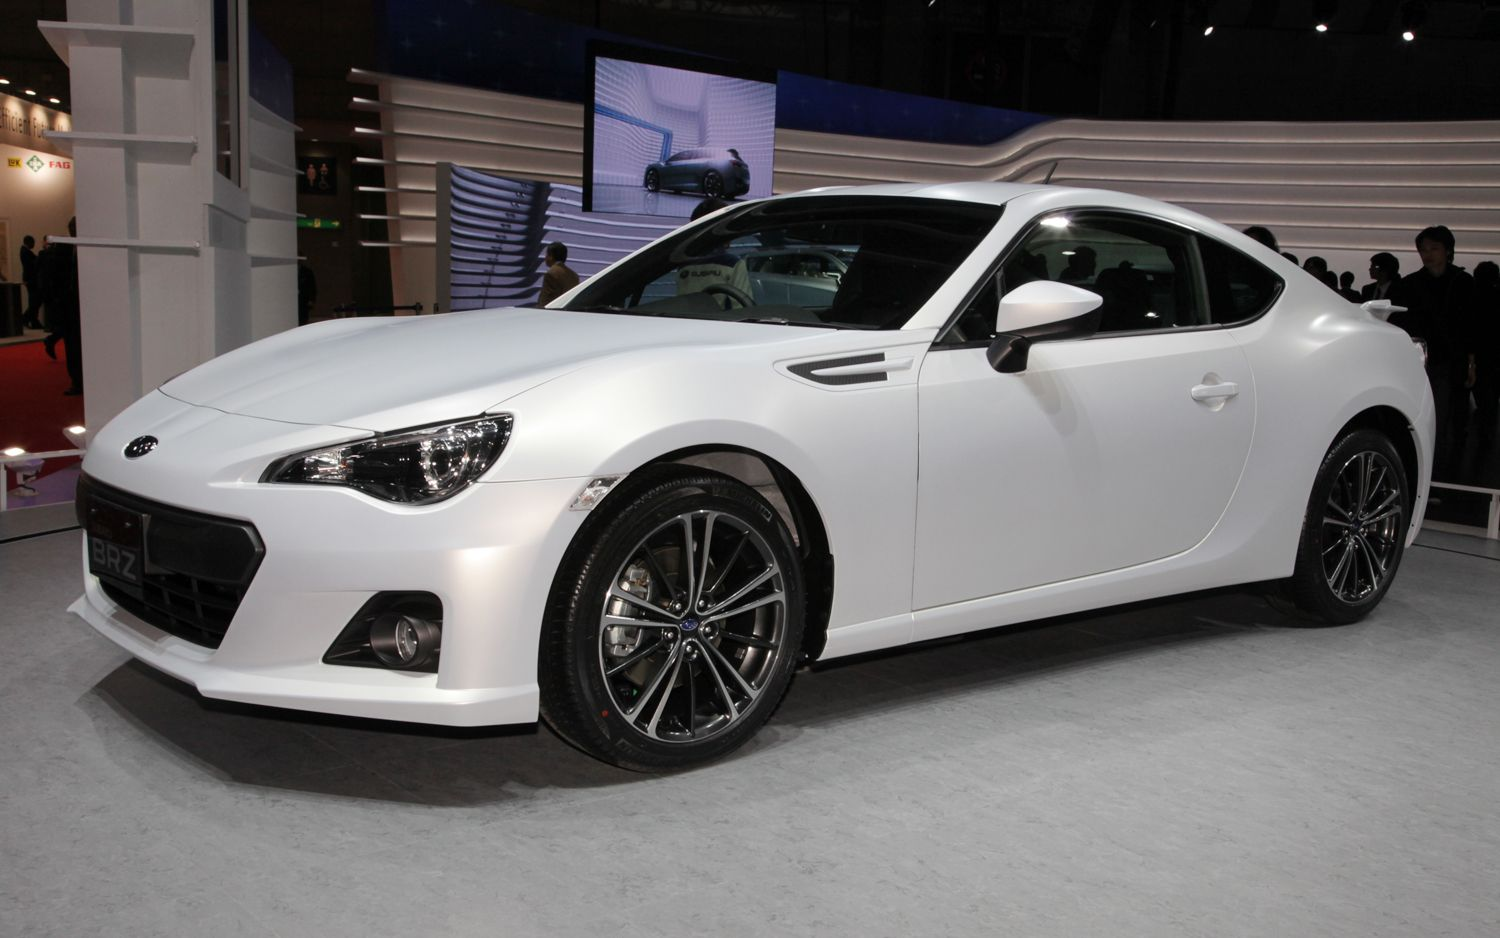 low-cost subaru brz destined for england, but not america - yet